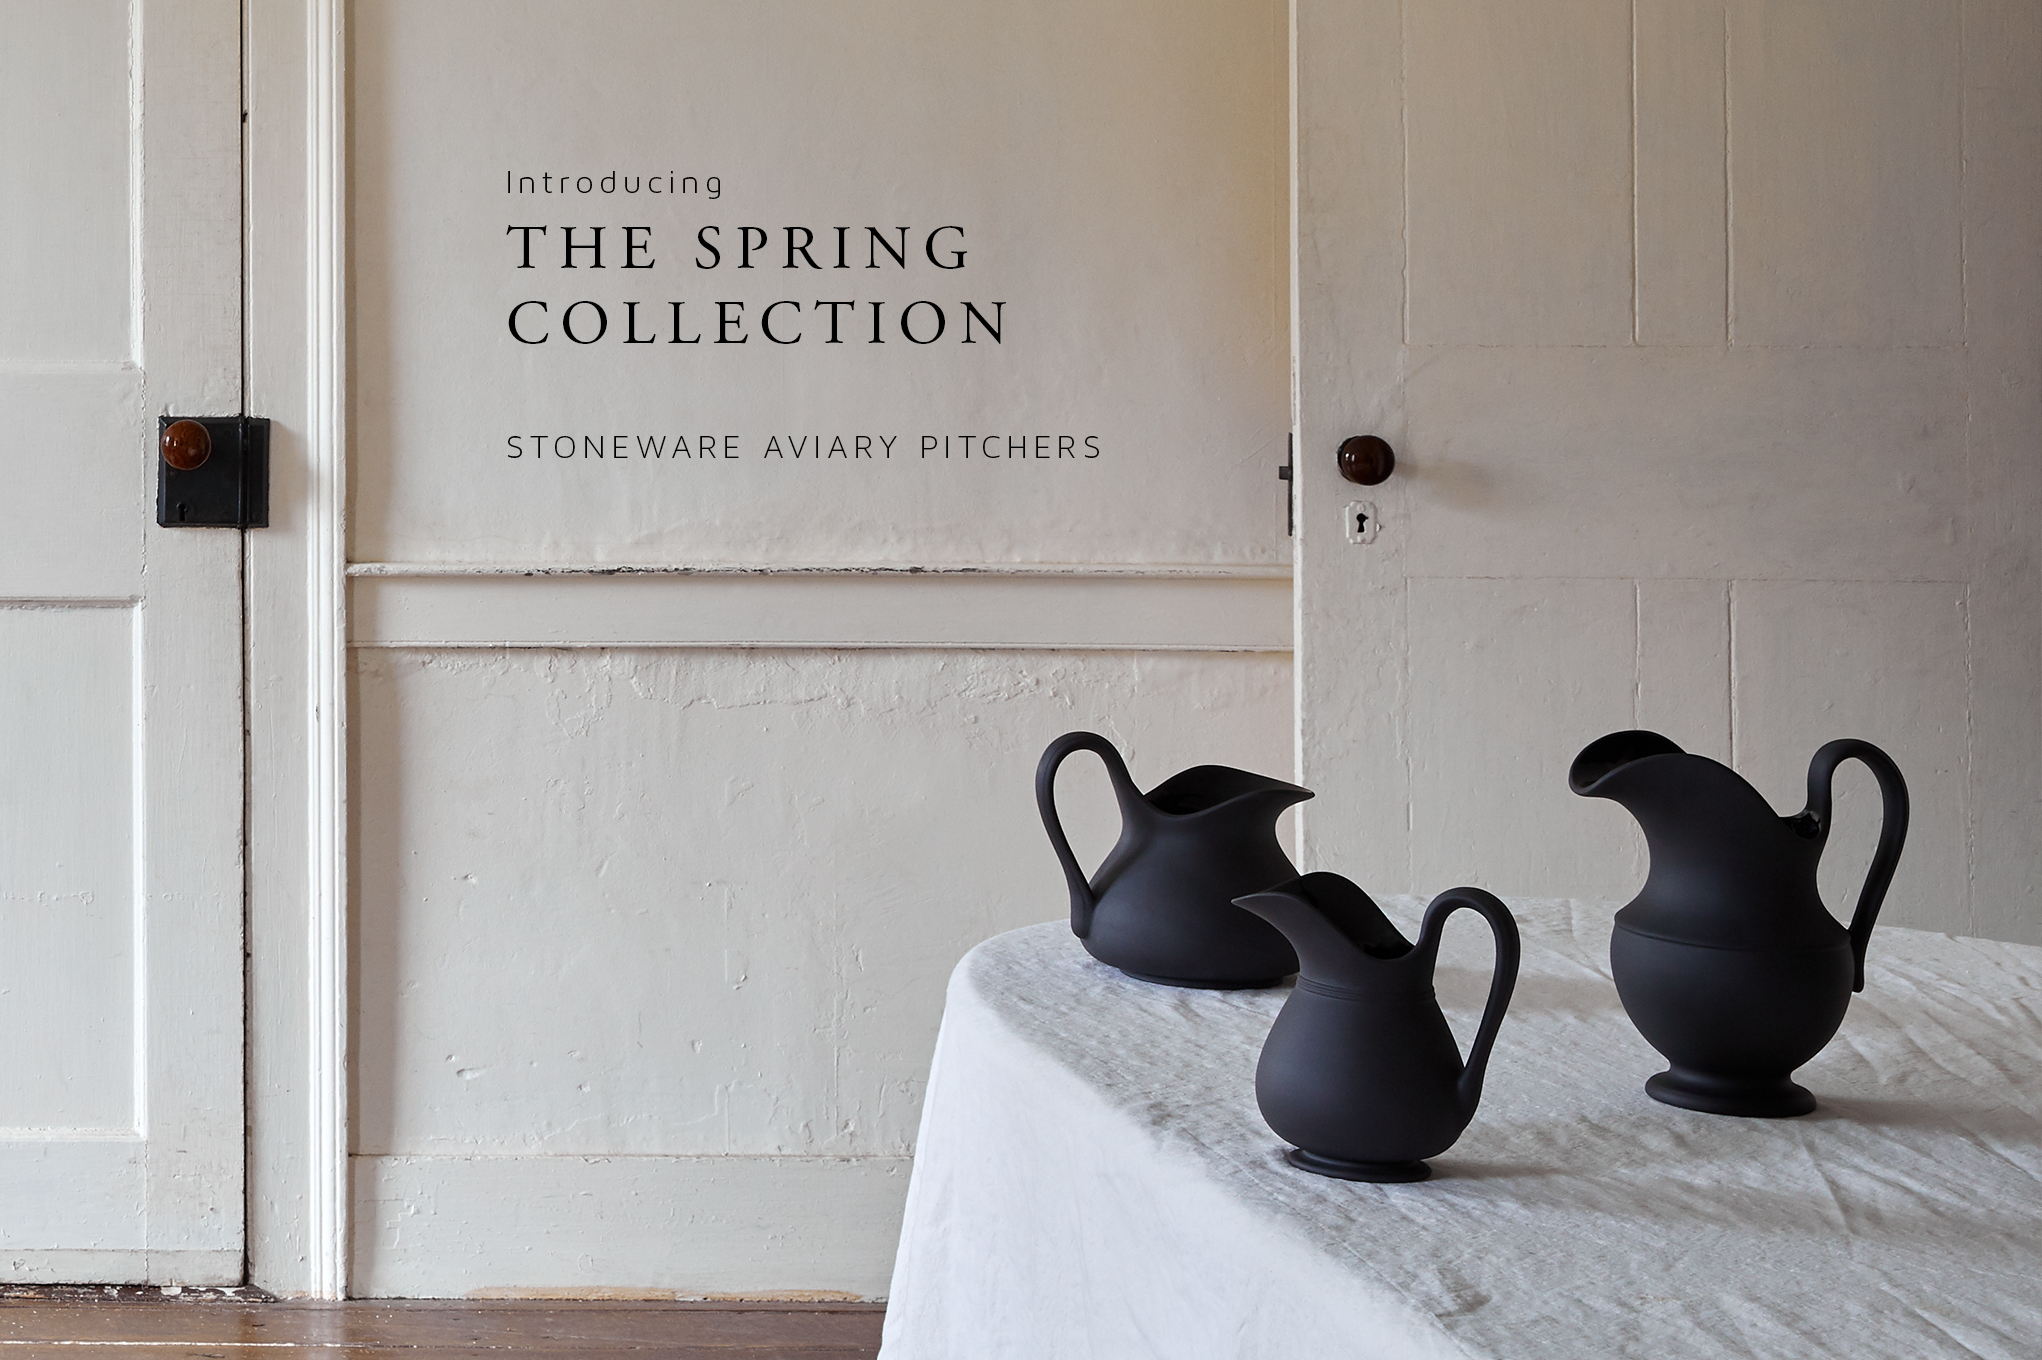 Introducing the Spring Collection: Aviary Pitchers